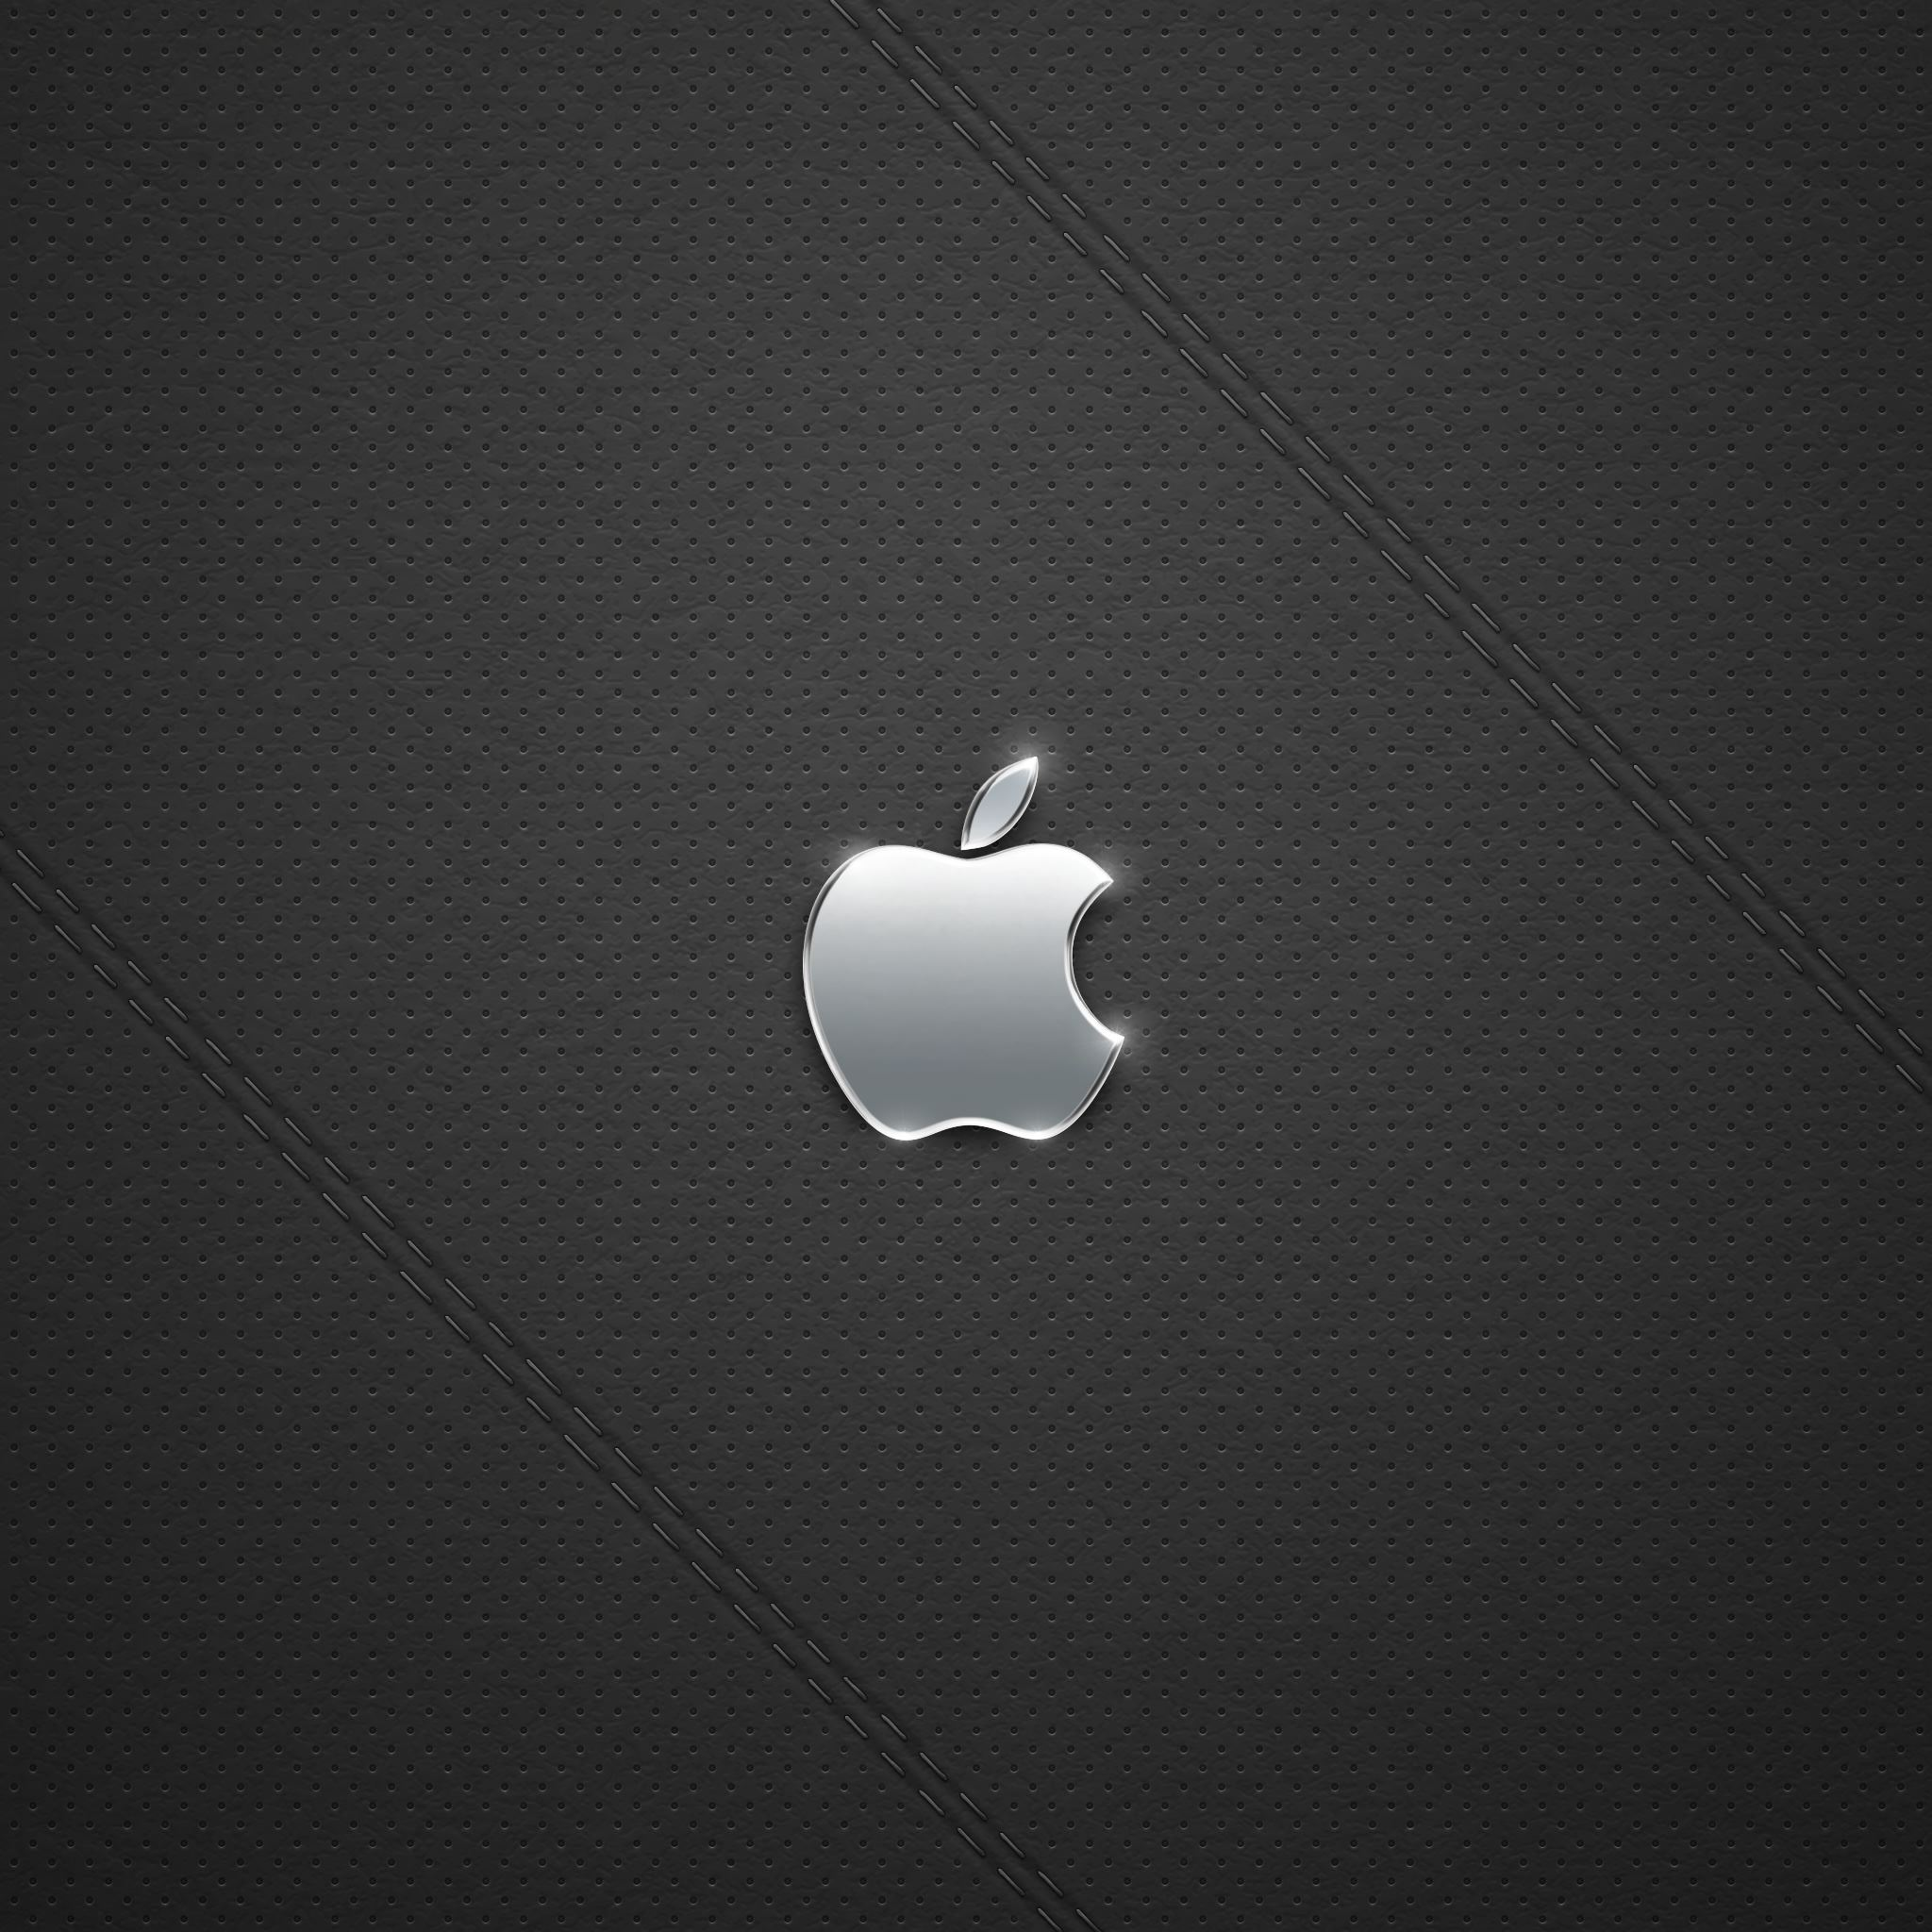 Black Leather Logo iPad Air wallpaper